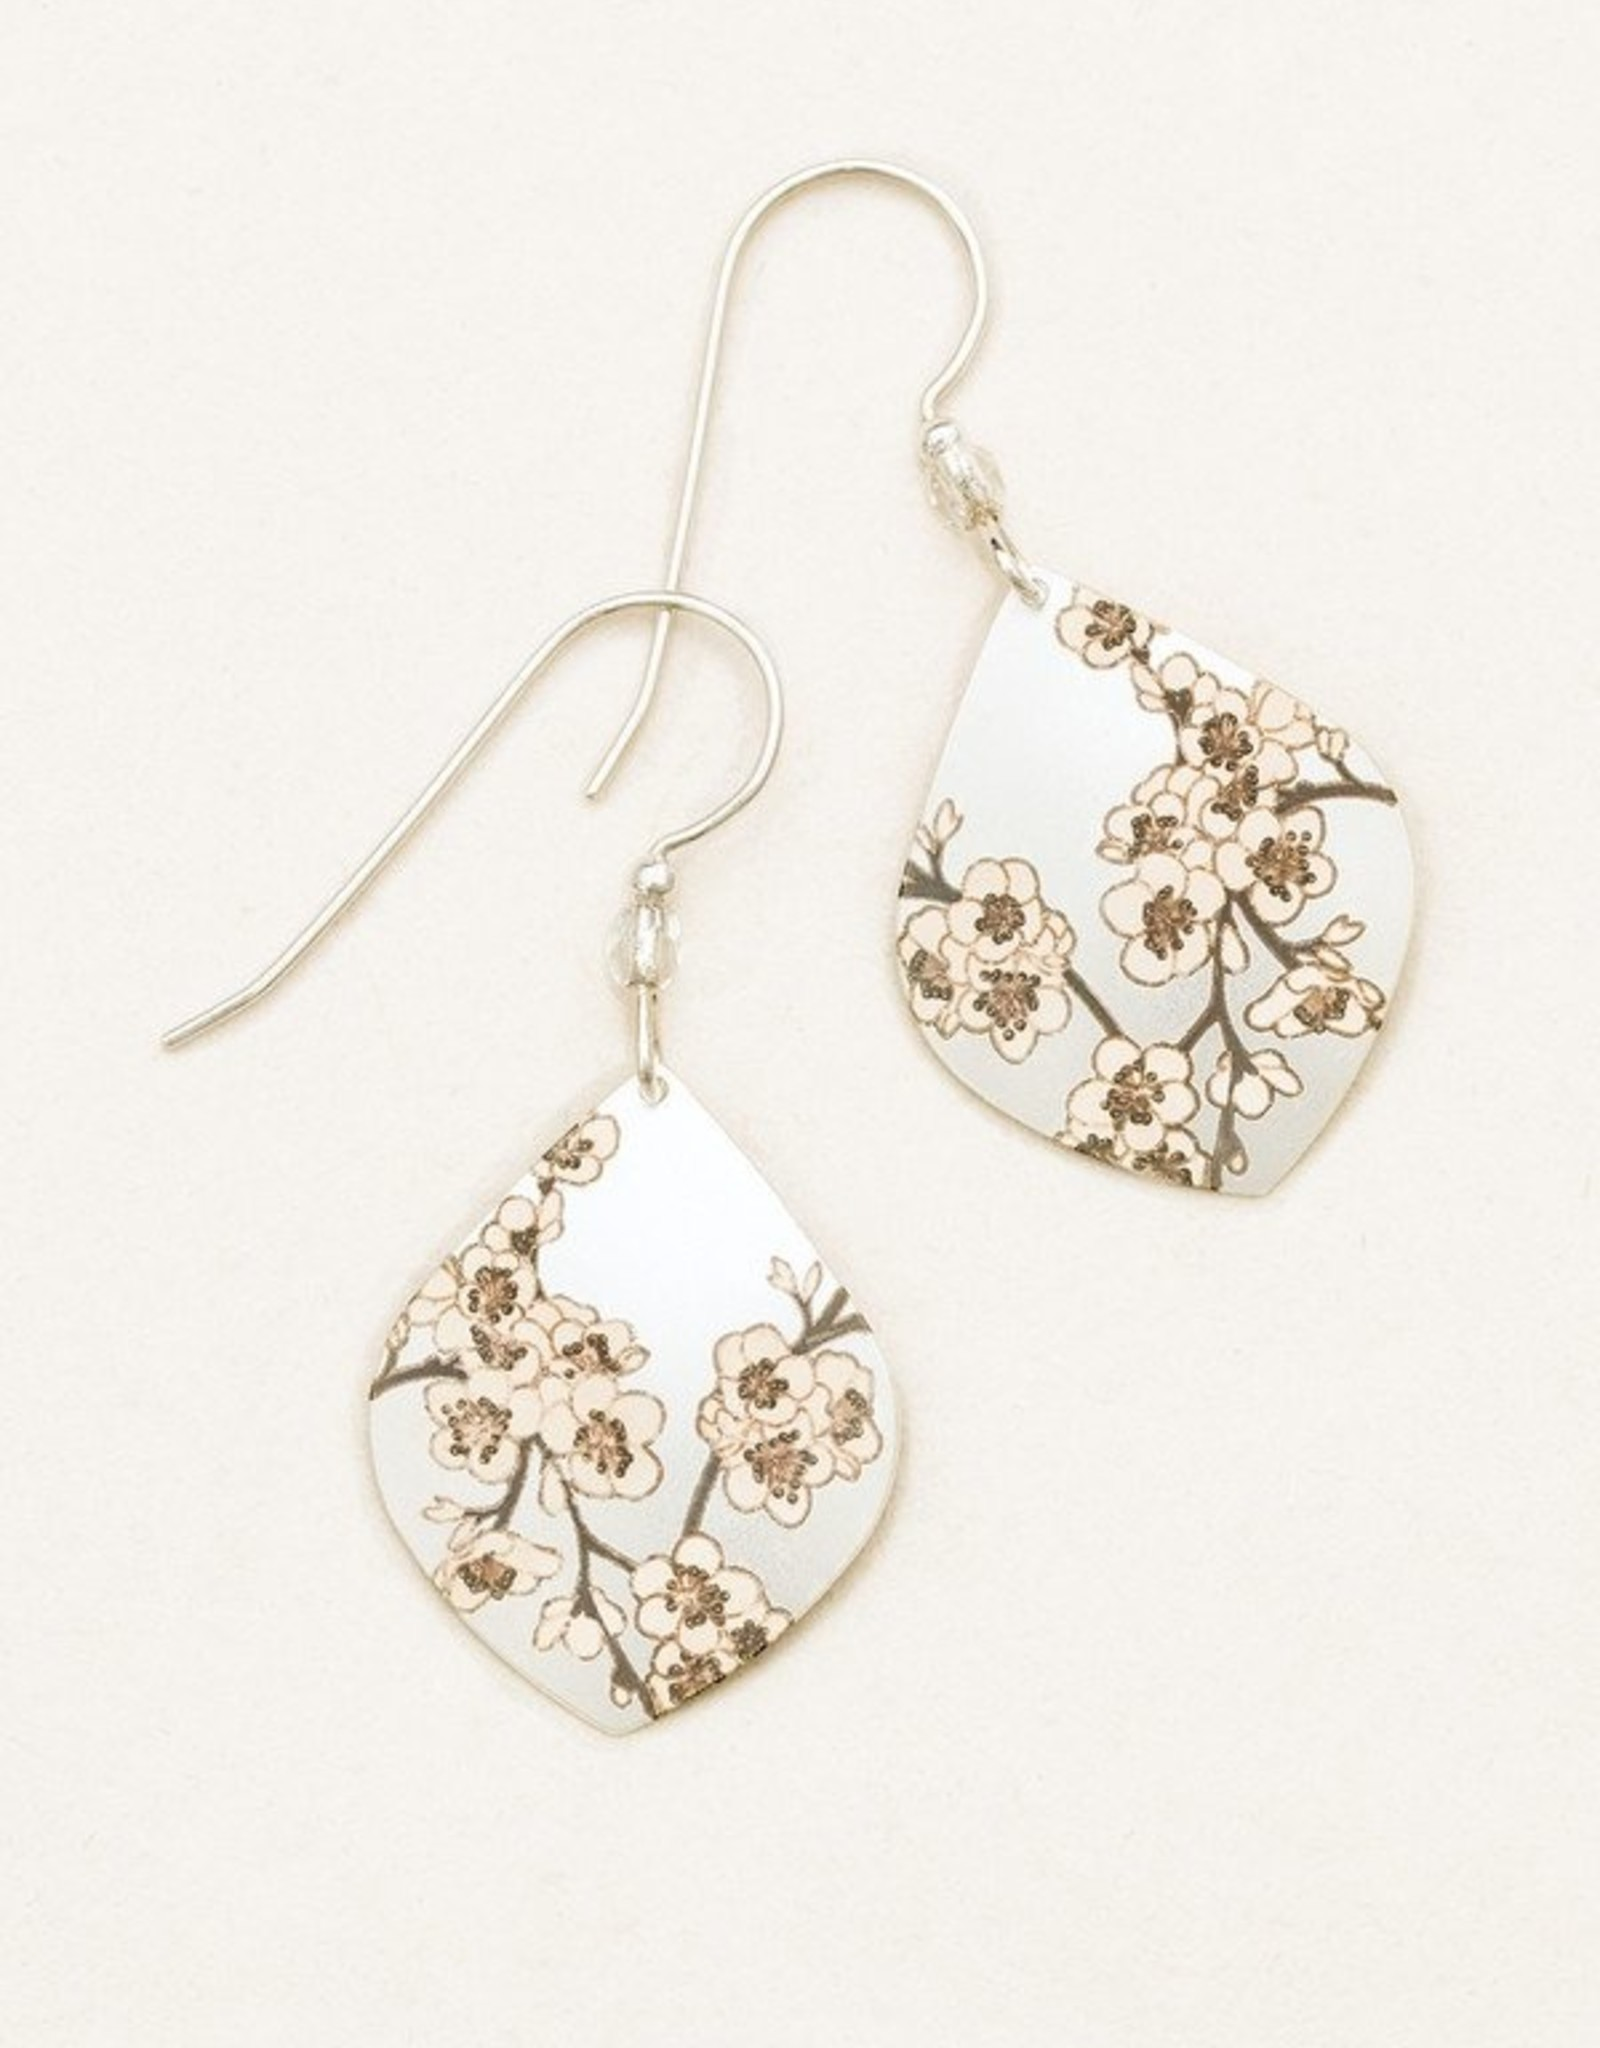 Holly Yashi Silver Spring in Bloom Earrings